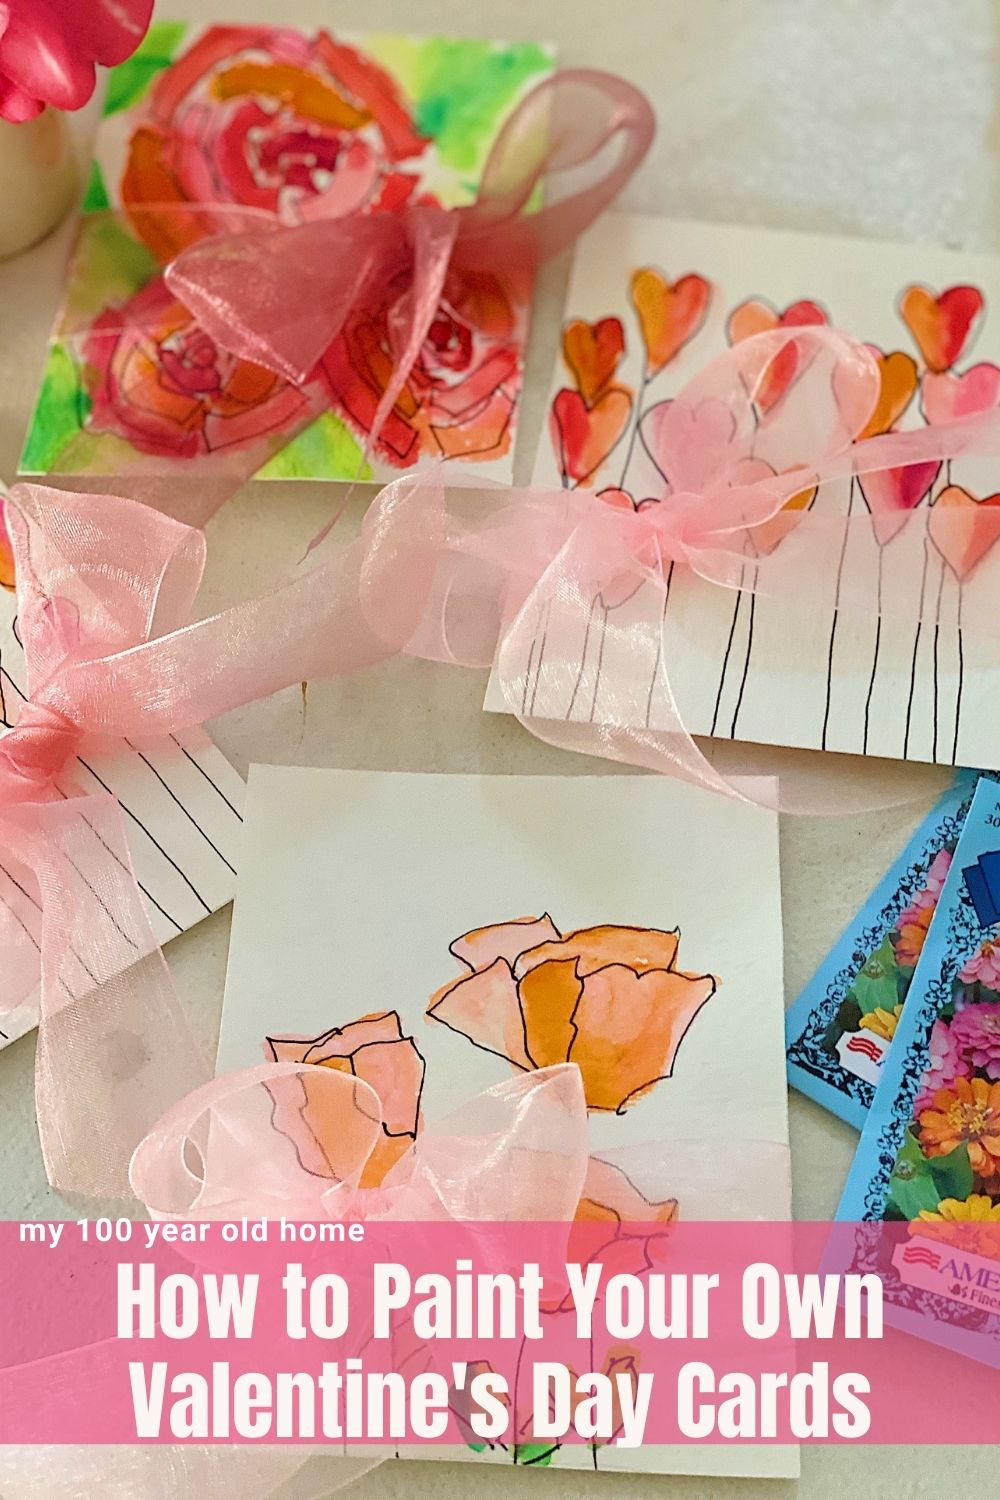 Today I am going to teach a very fun paint your own Valentine's Day Cards DIY. These hand-painted cards look amazing and are very easy to make!